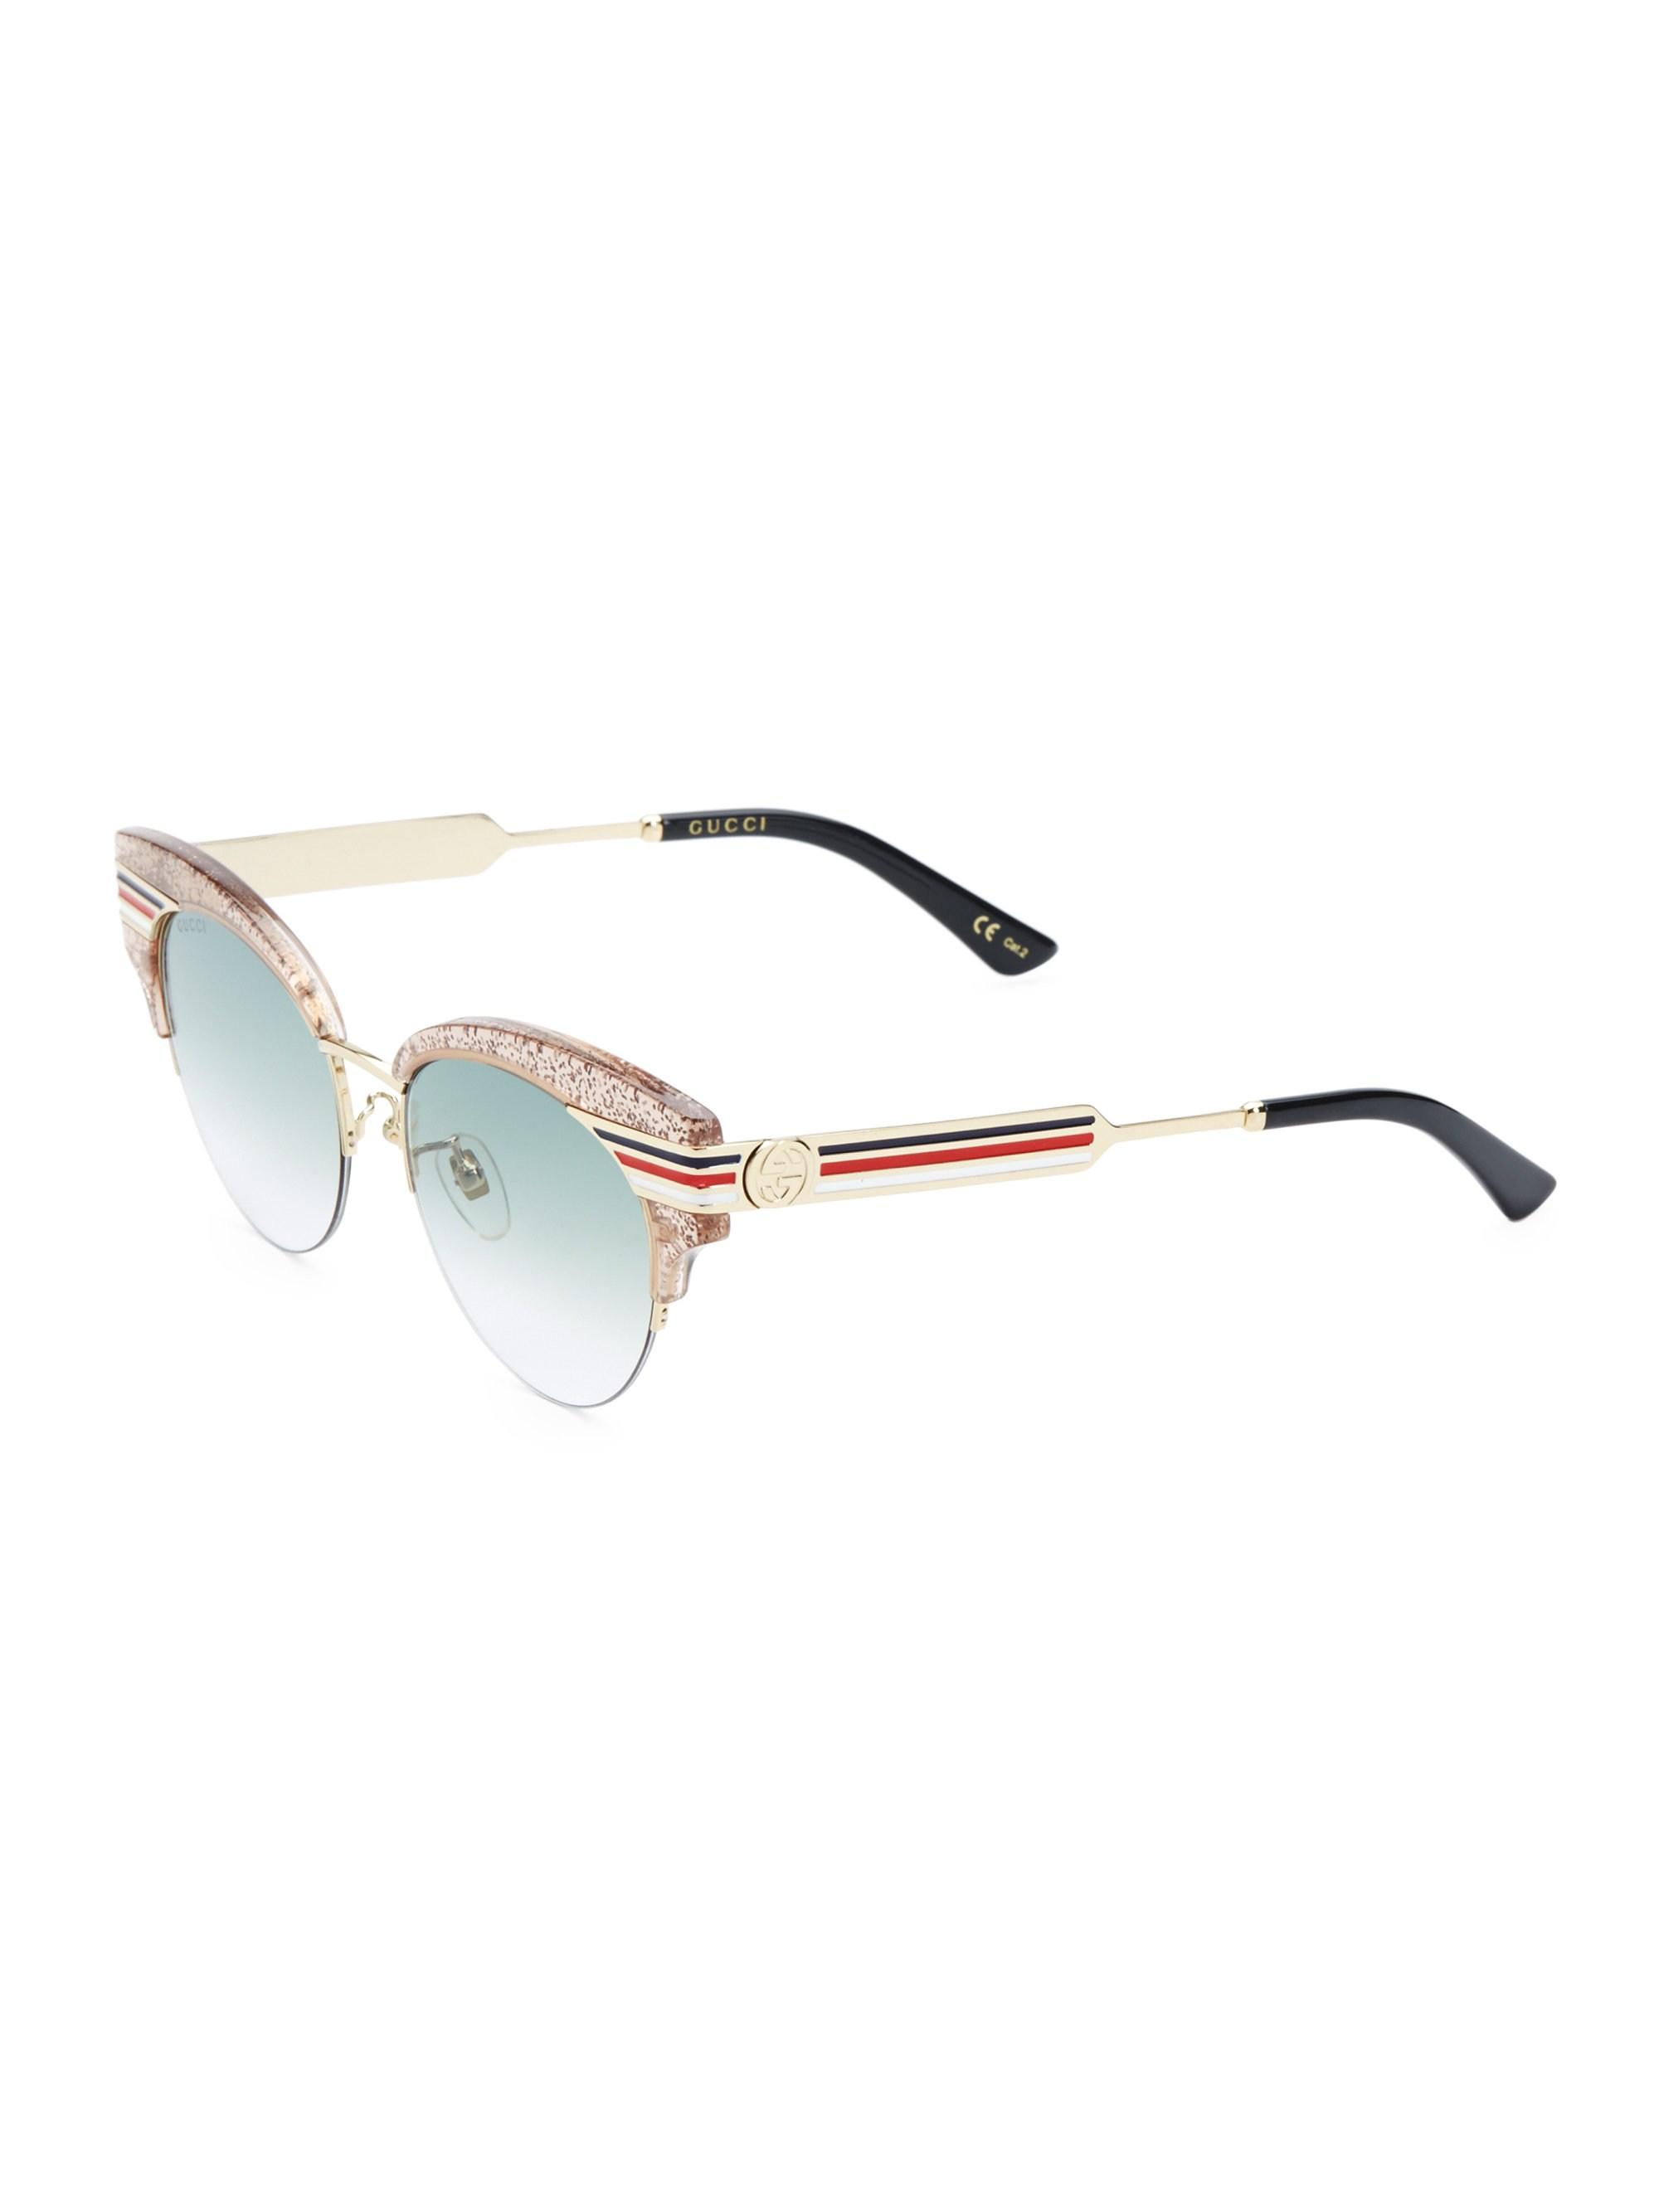 504be56973825 Gucci - Multicolor Women s 53mm Cat Eye Sunglasses - Nude - Lyst. View  fullscreen